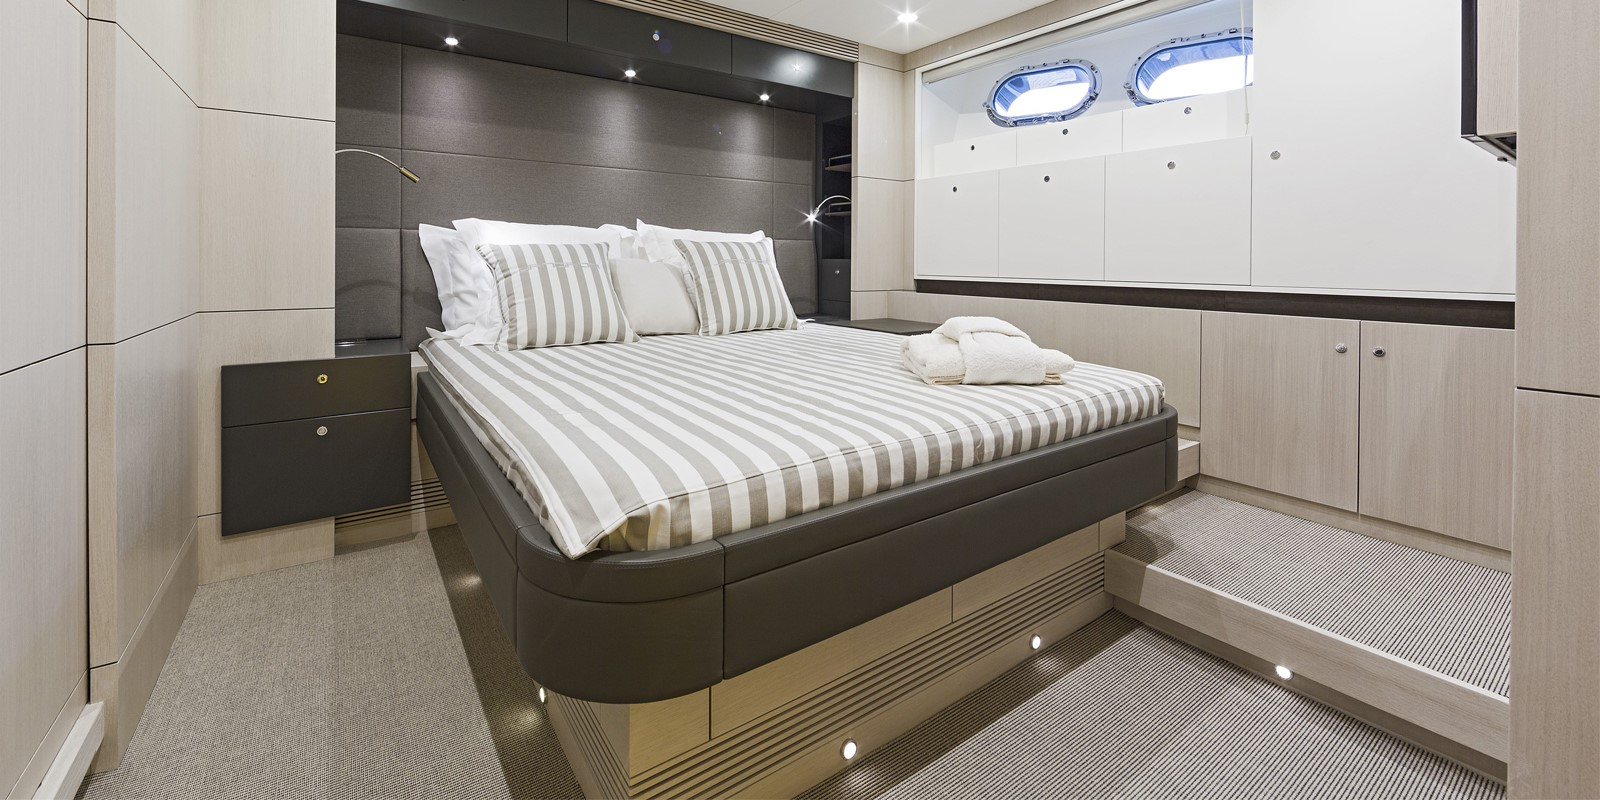 Яхта Van der Valk Raised Pilothouse 82 - фото 8 из 11